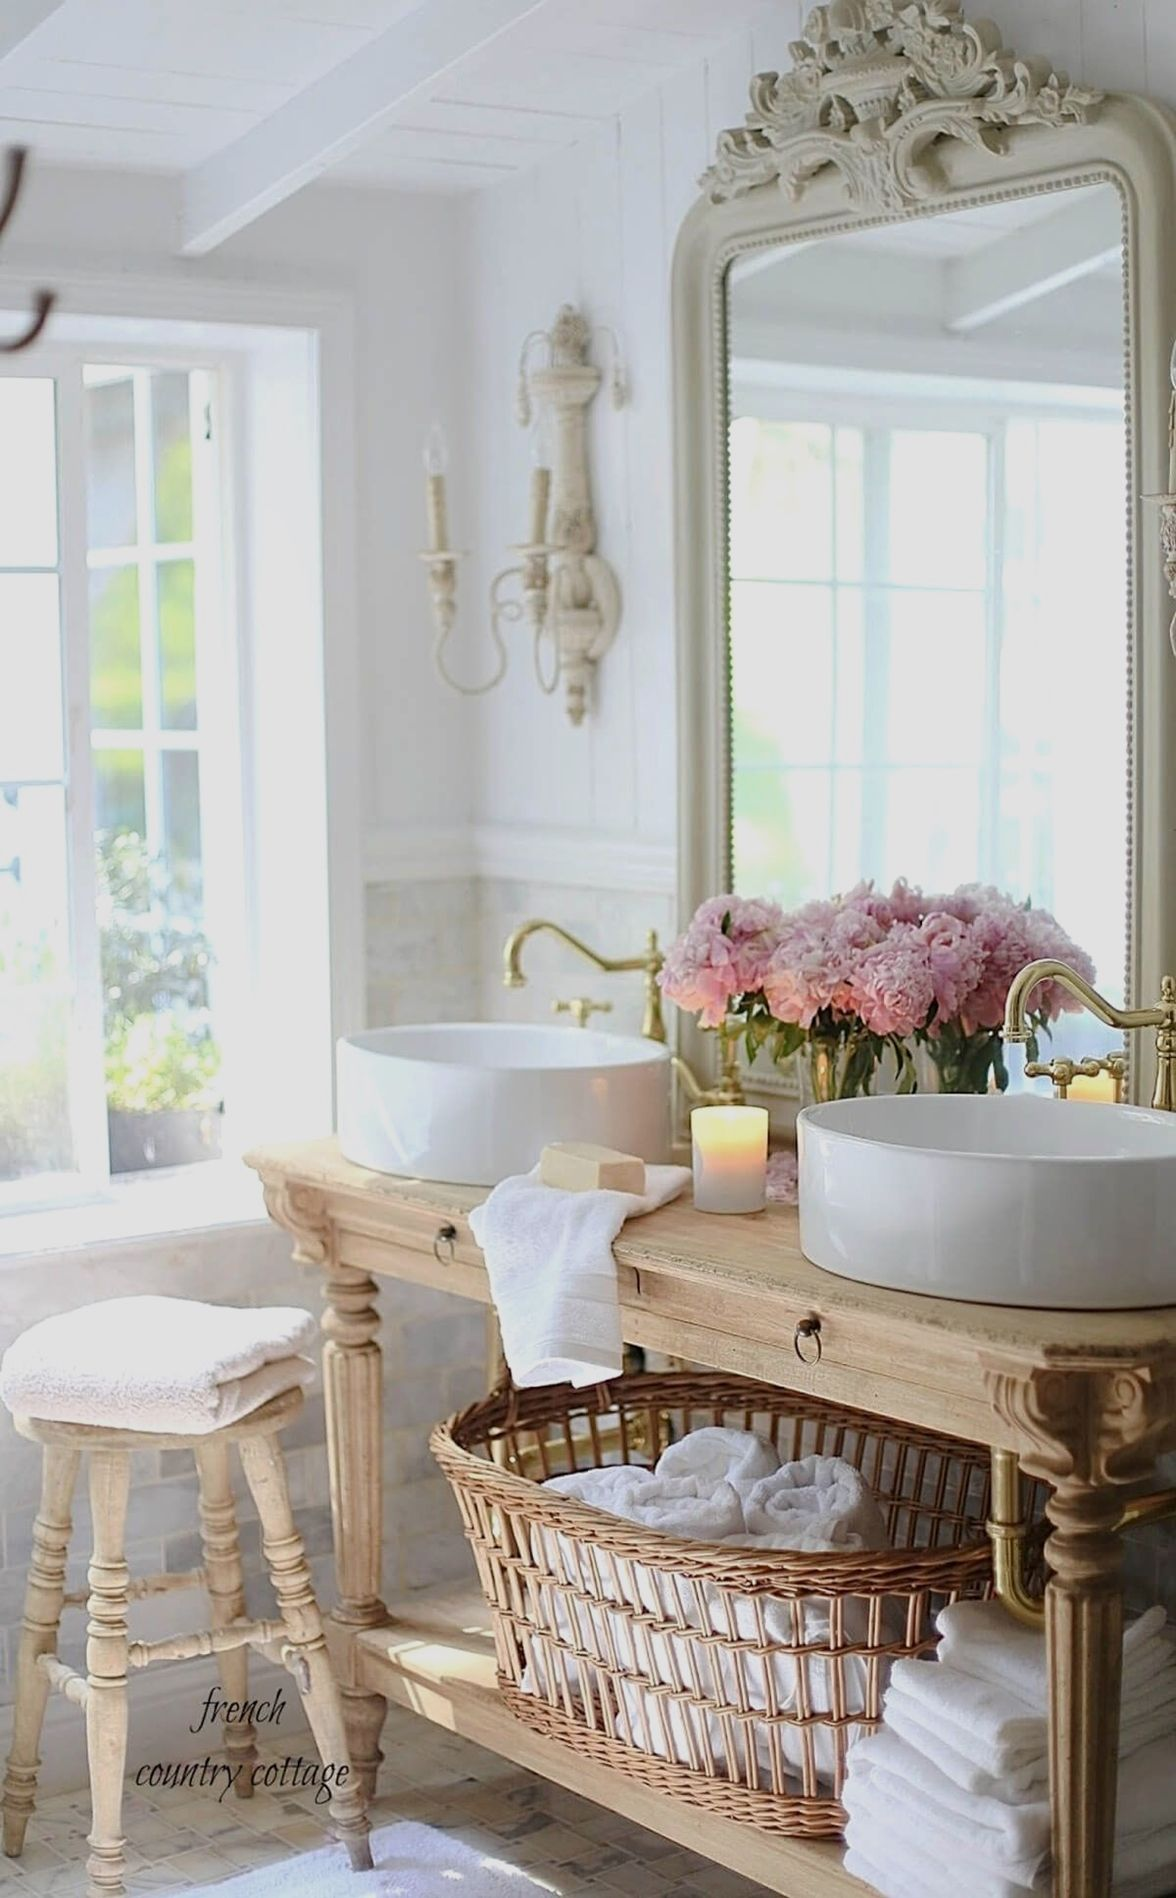 Parlour at home remodeling ideas in pinterest parlour at